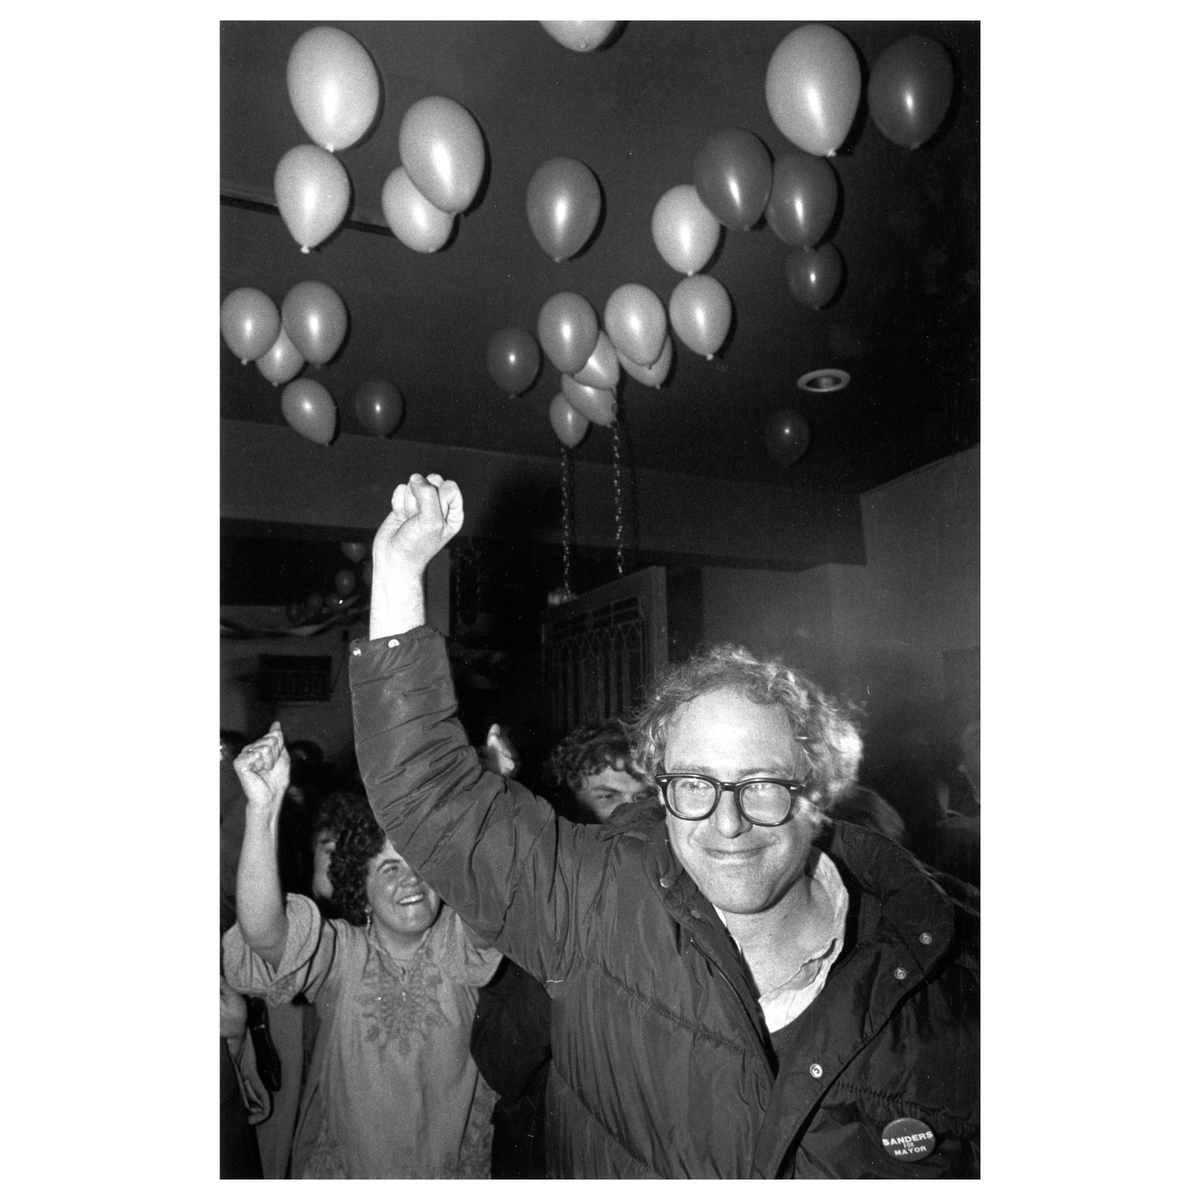 40 years ago today, I won my first election to become Mayor of Burlington by just 10 votes. 10 votes. Do not ever let anyone convince you of the notion that your vote does not matter. Your vote matters and we need you to stay involved in the political process.